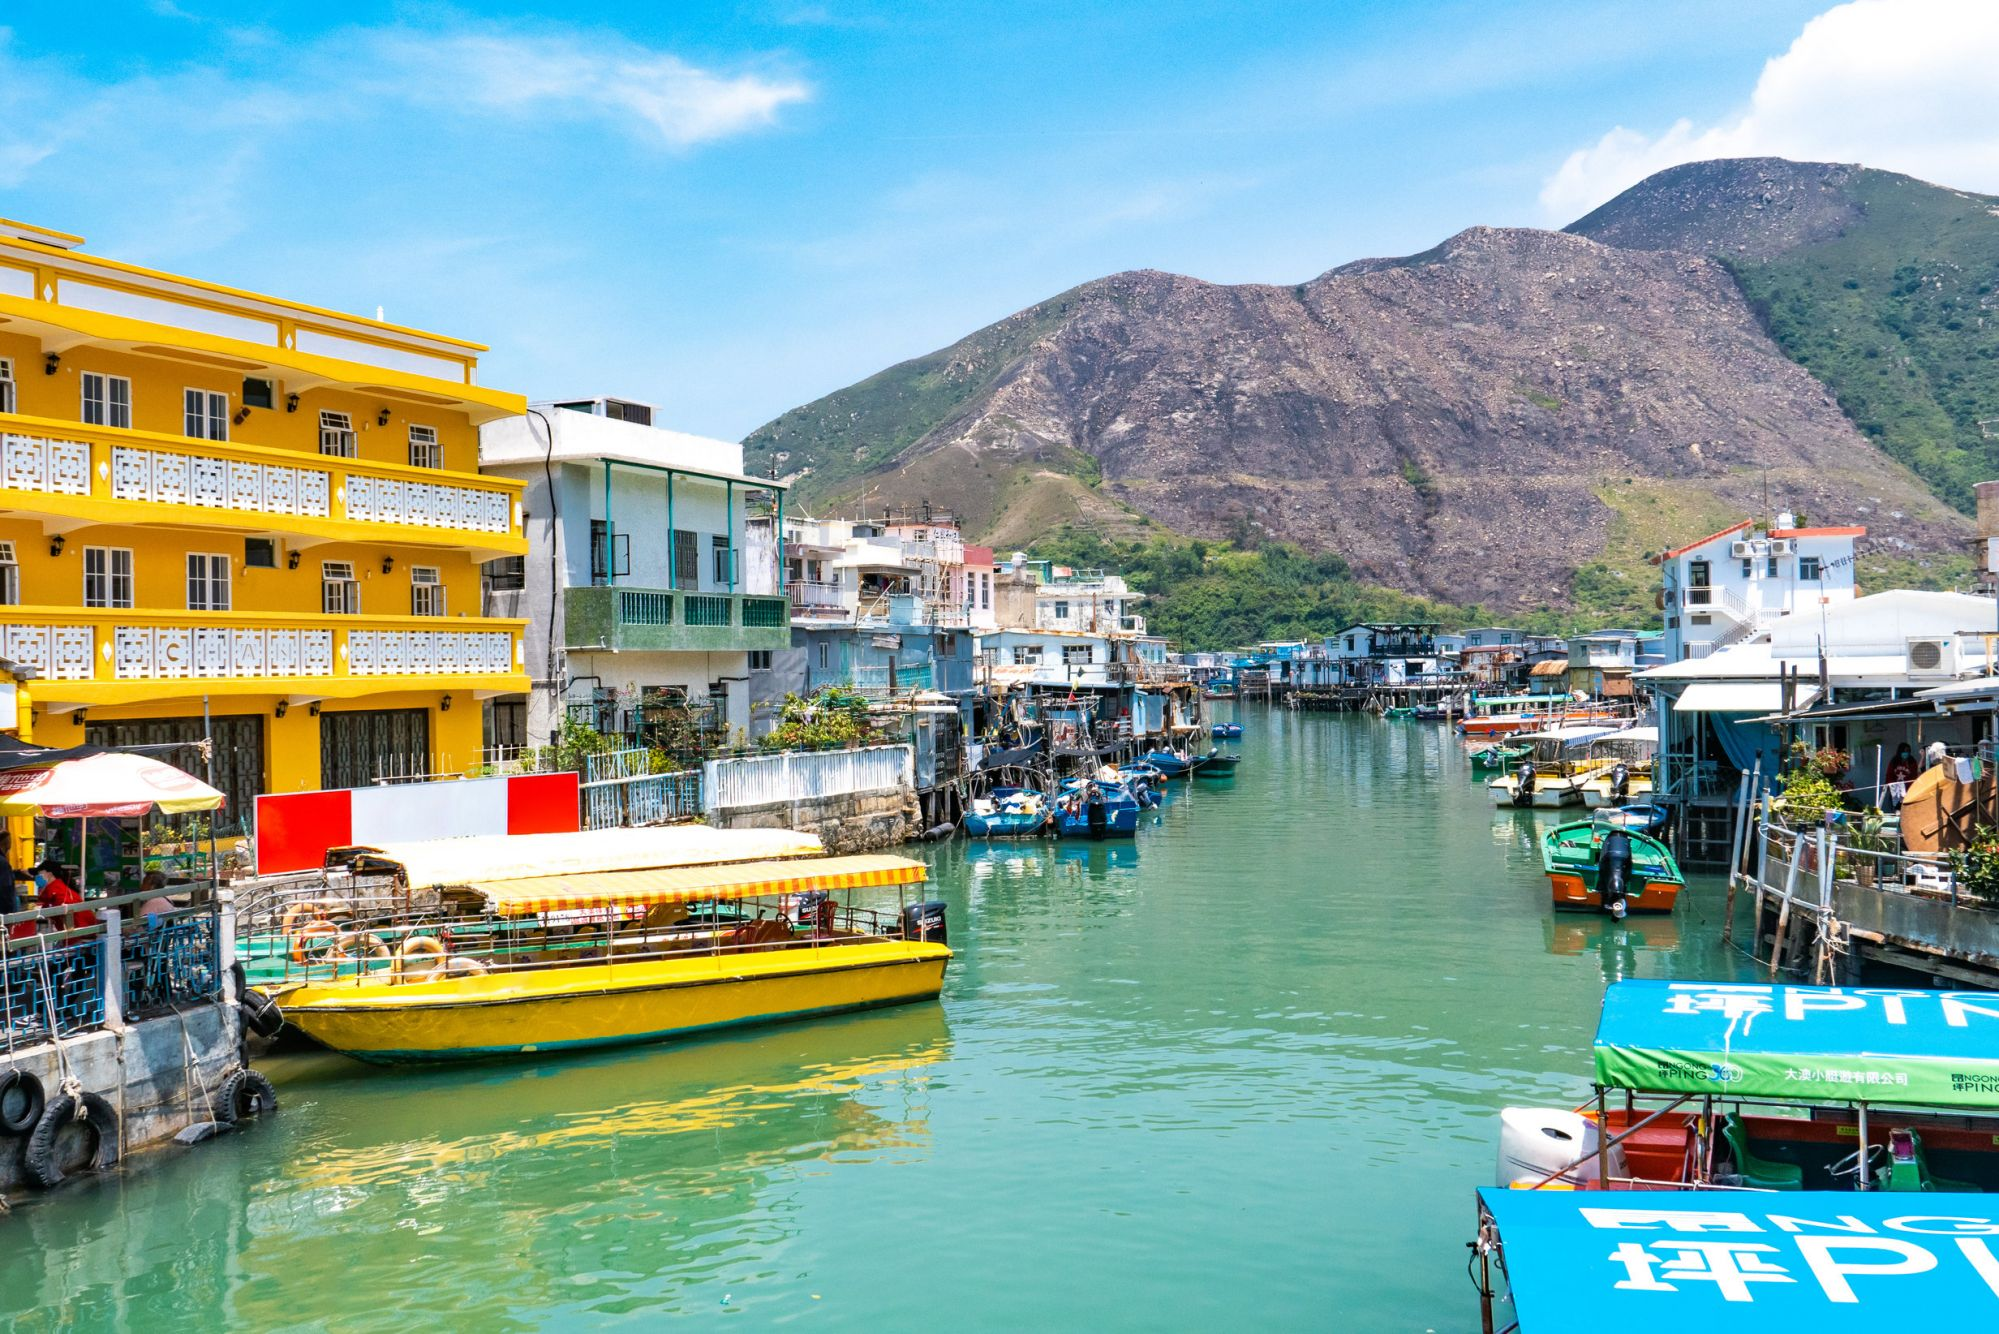 Neighbourhood Guide: What To Eat, Drink And Do In Tai O